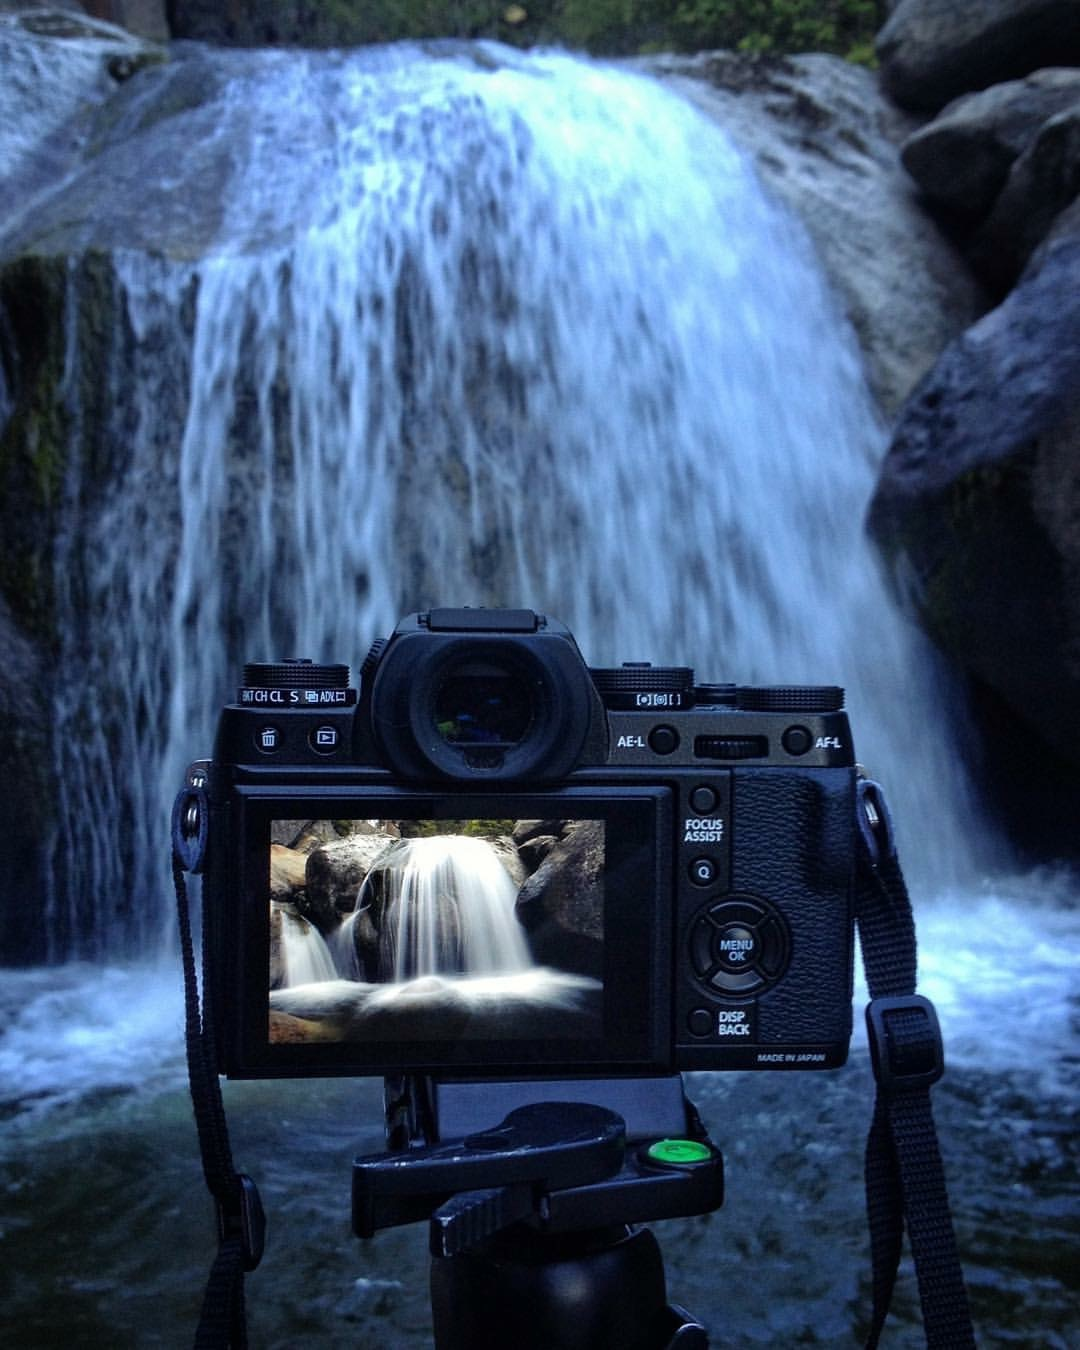 The beauty trickles inside of the camera...